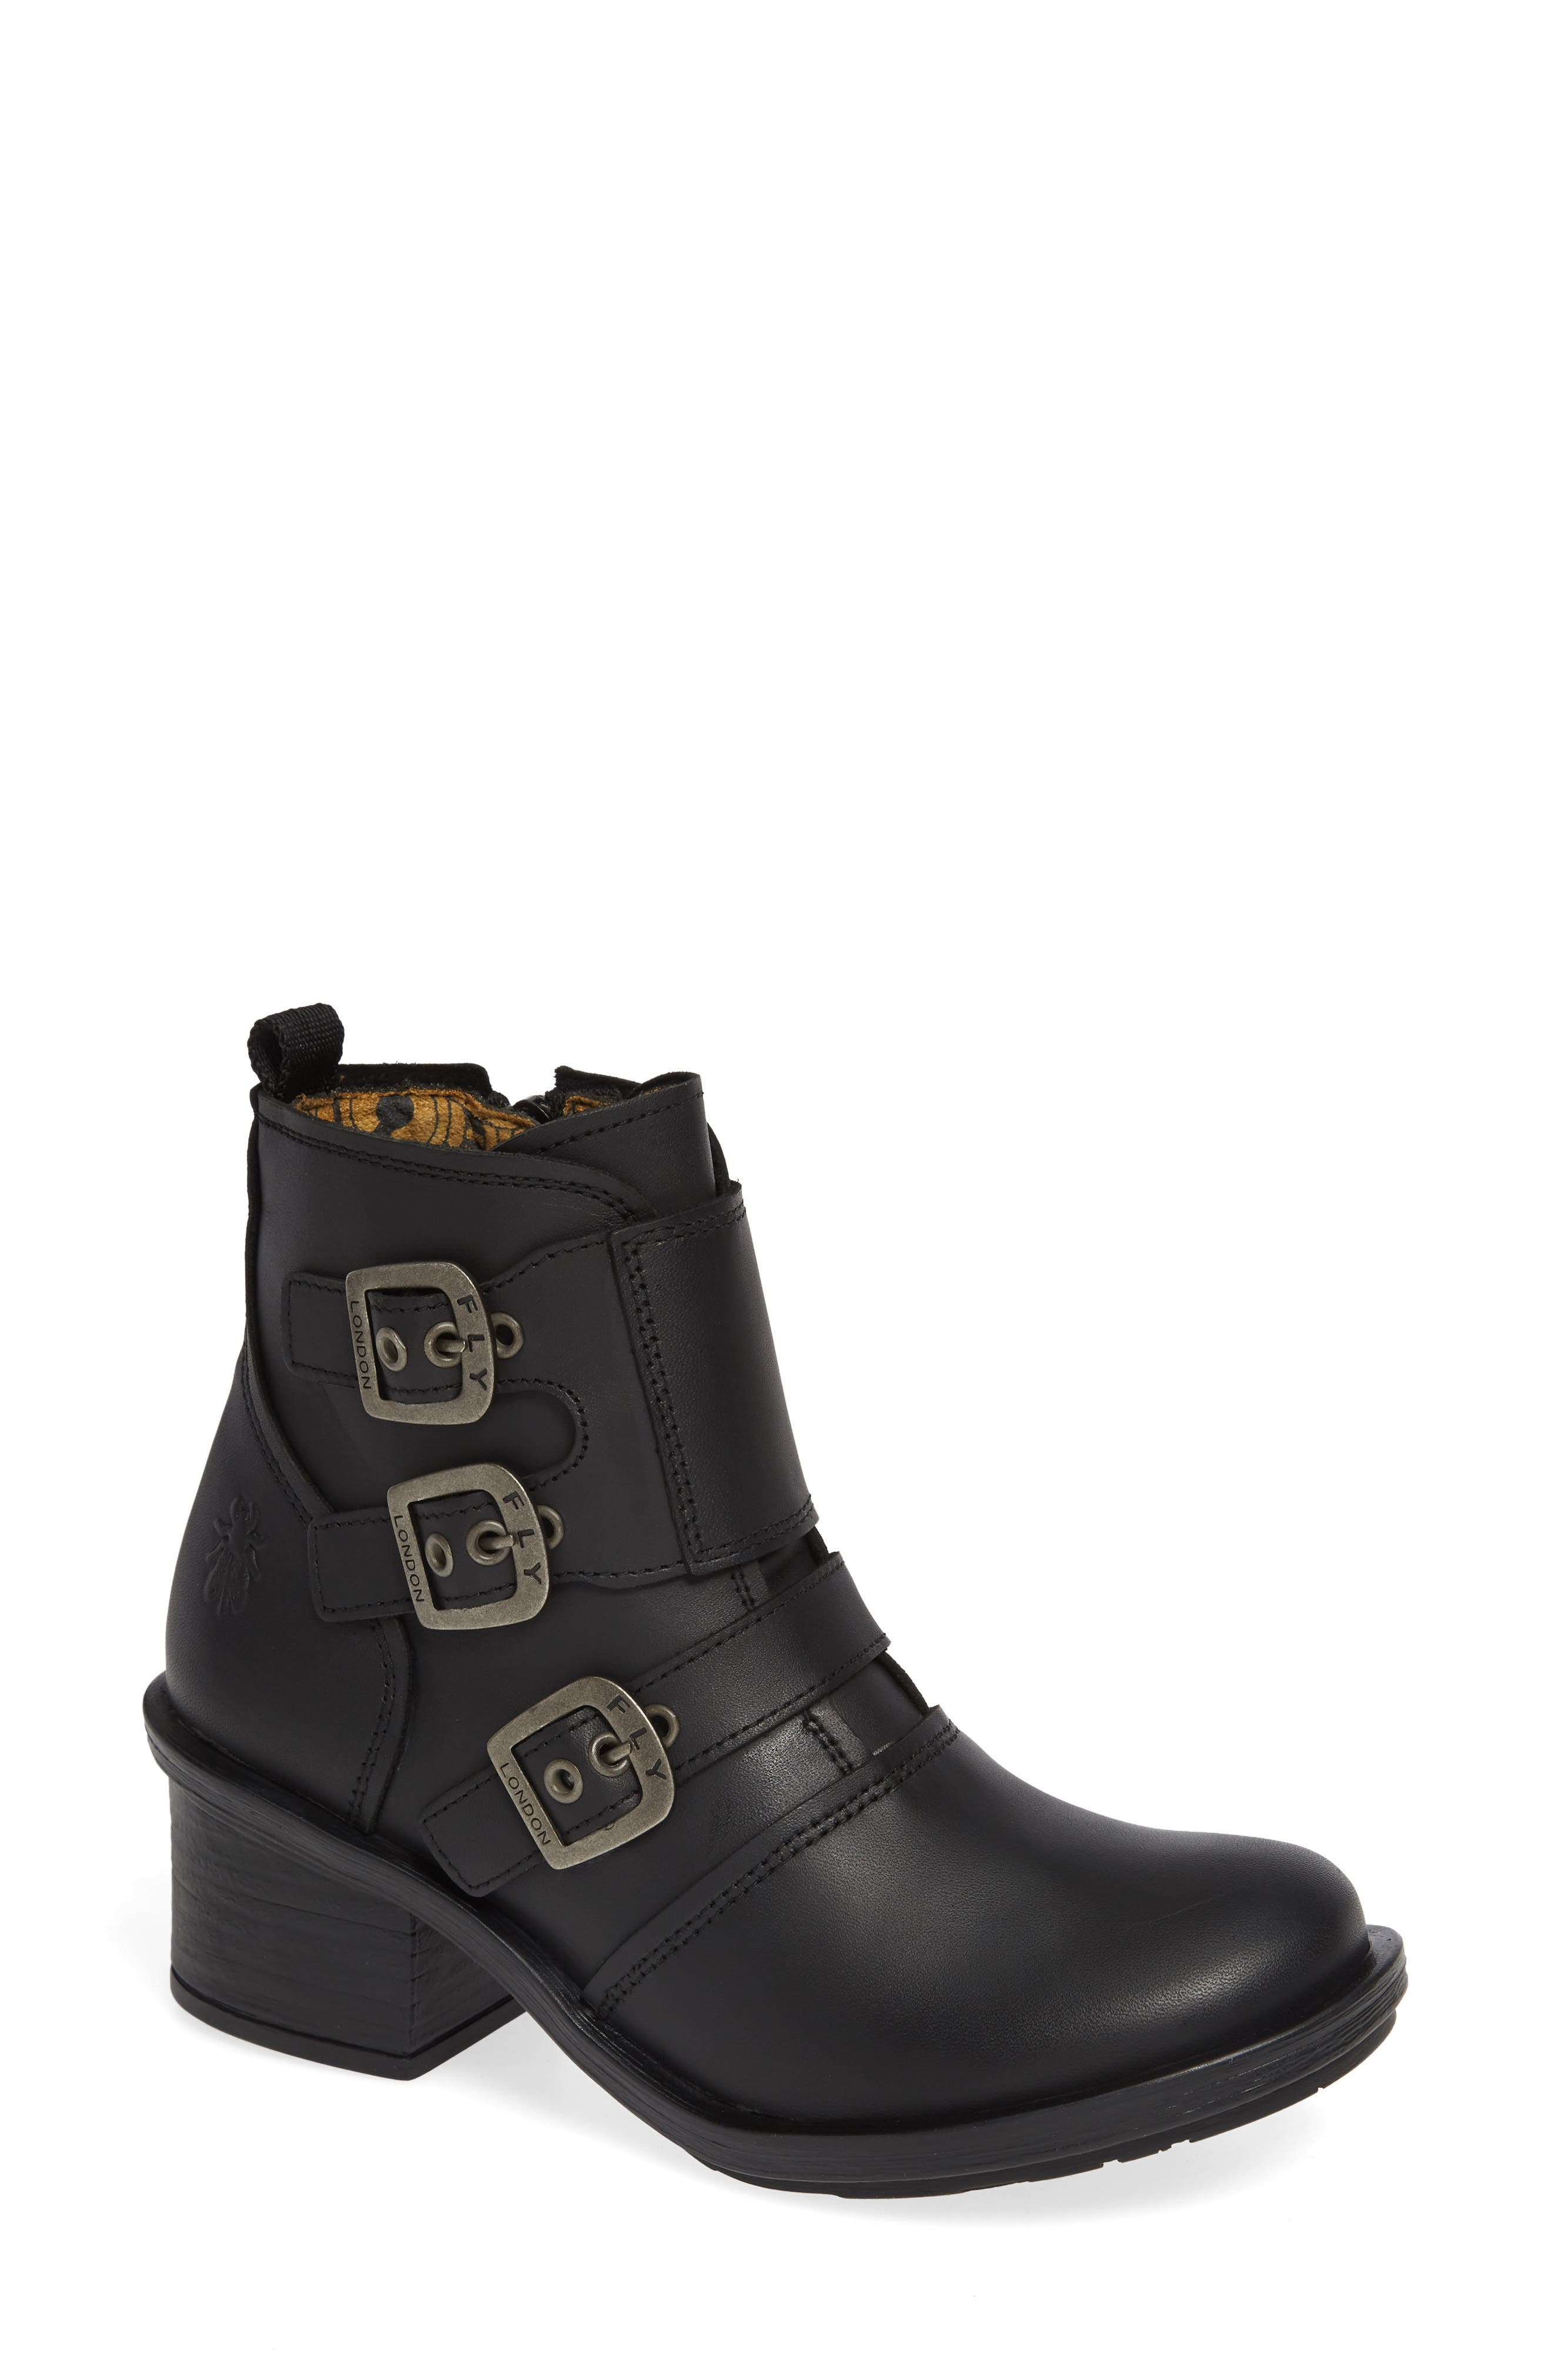 Fly London Crip Buckle Boot, Black